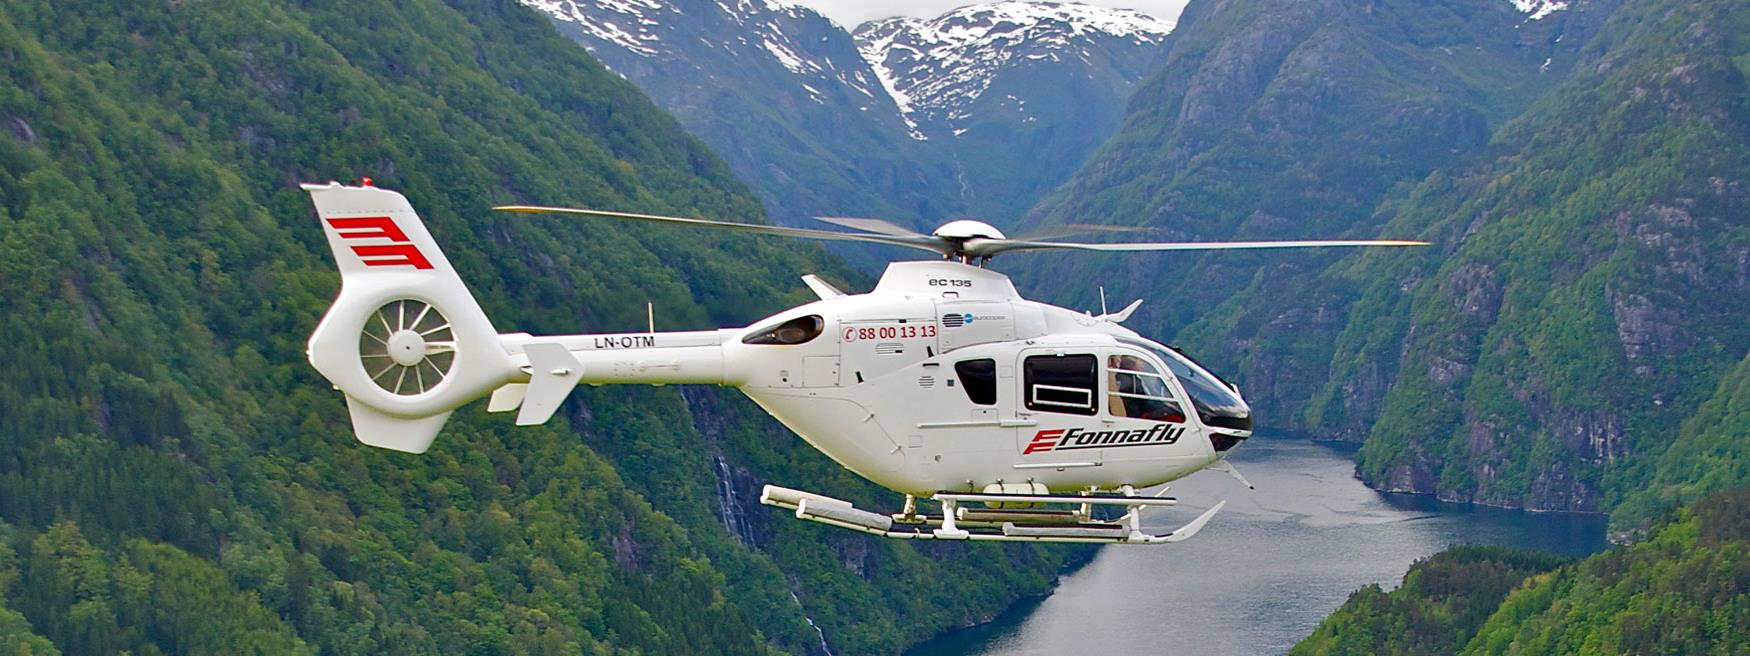 Helicopter sightseeing